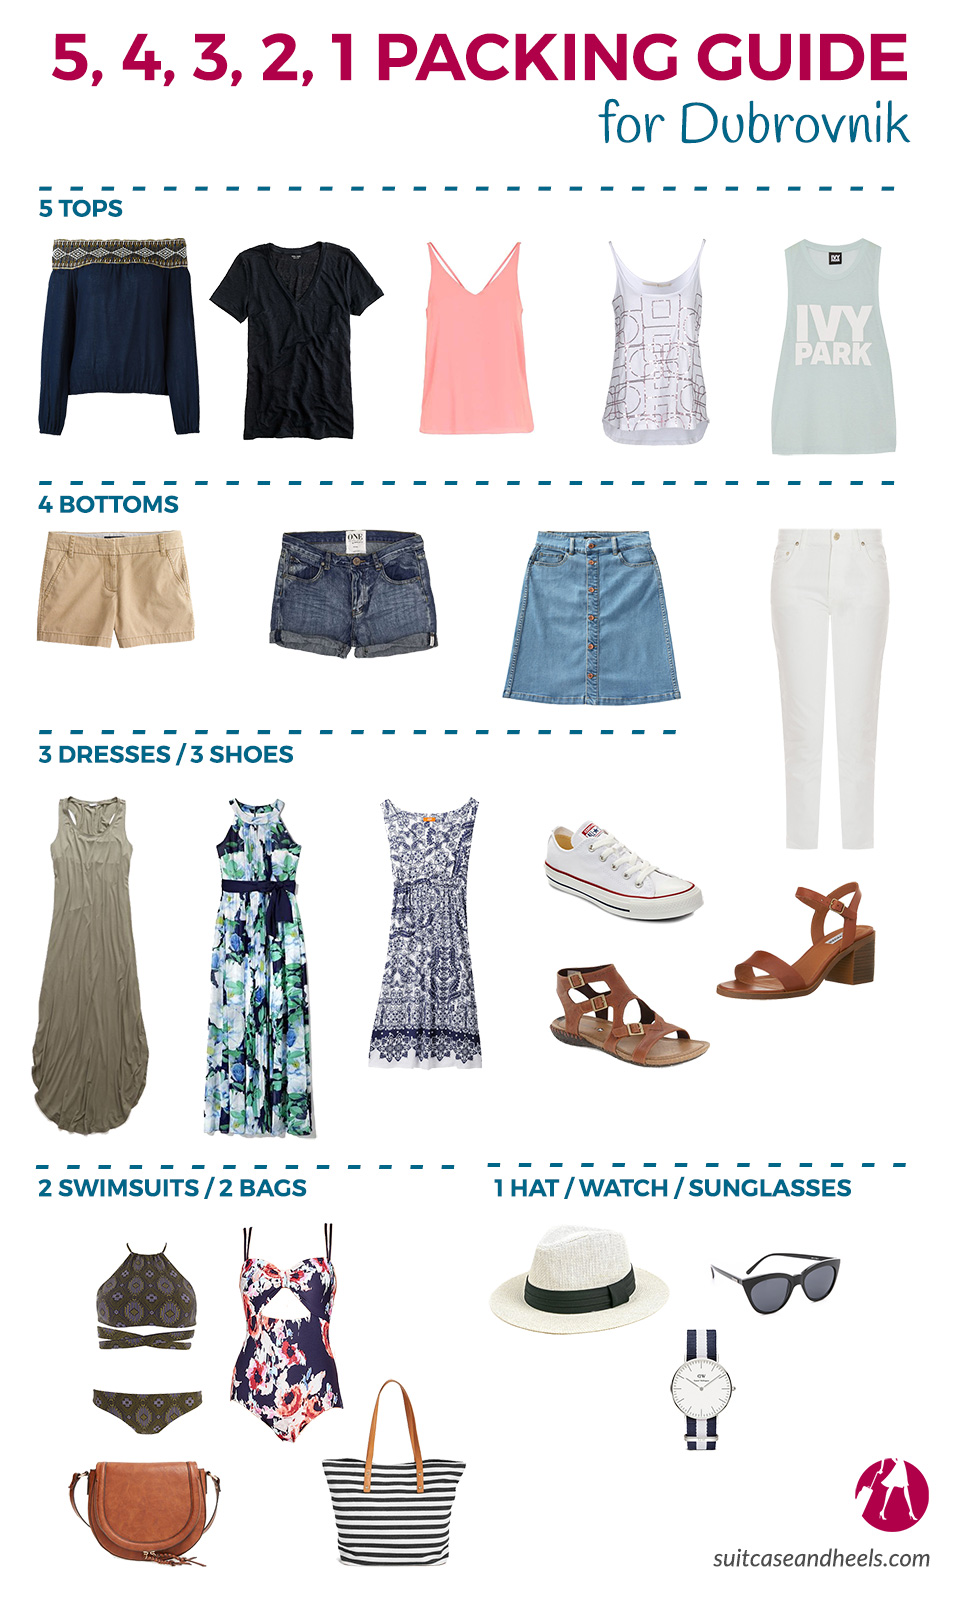 Packing Guide for Dubrovnik